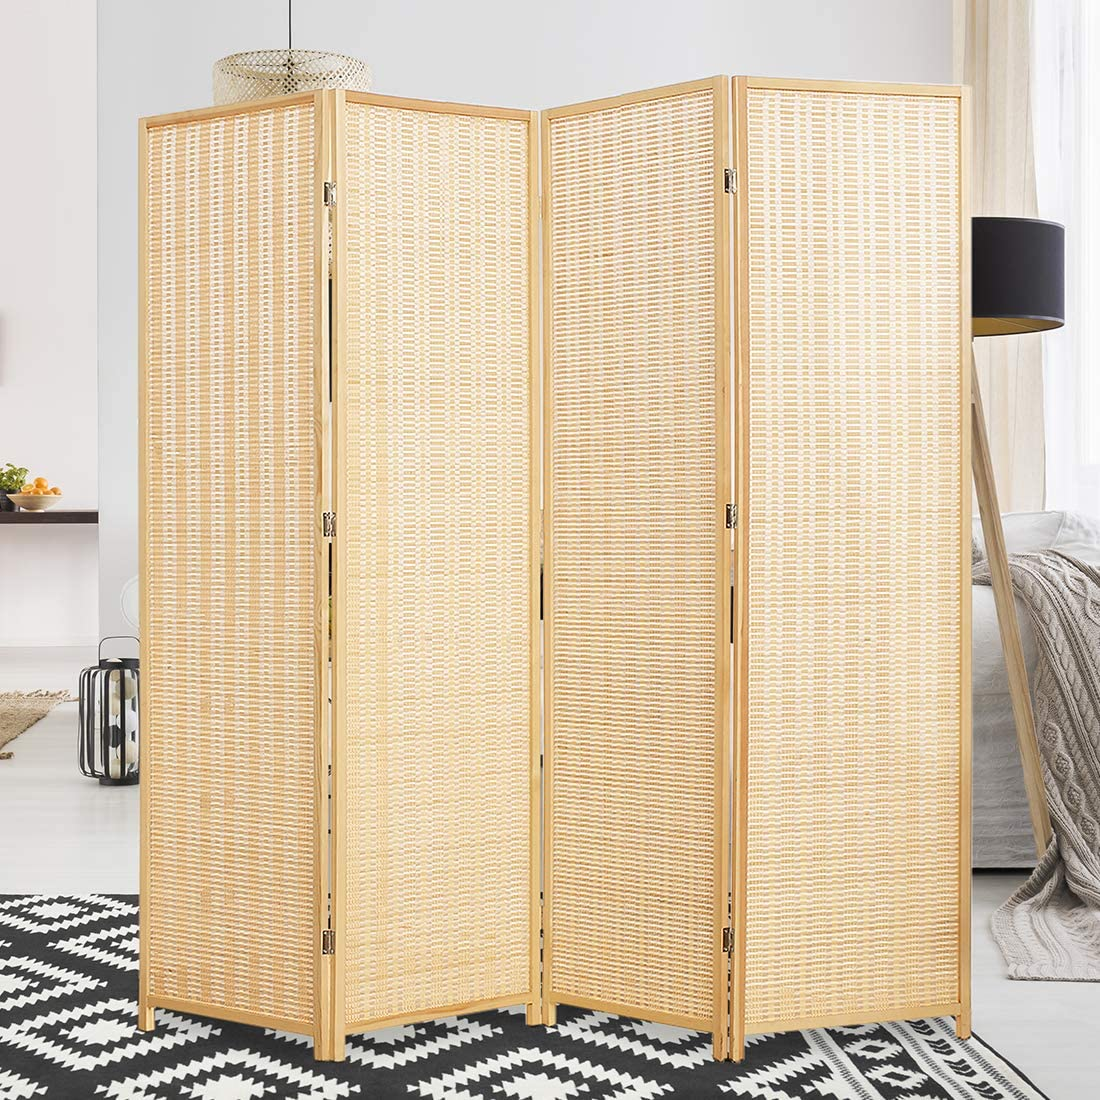 Bamboo Room Dividers Folding Privacy Screen Decorative Separation Wall Separator